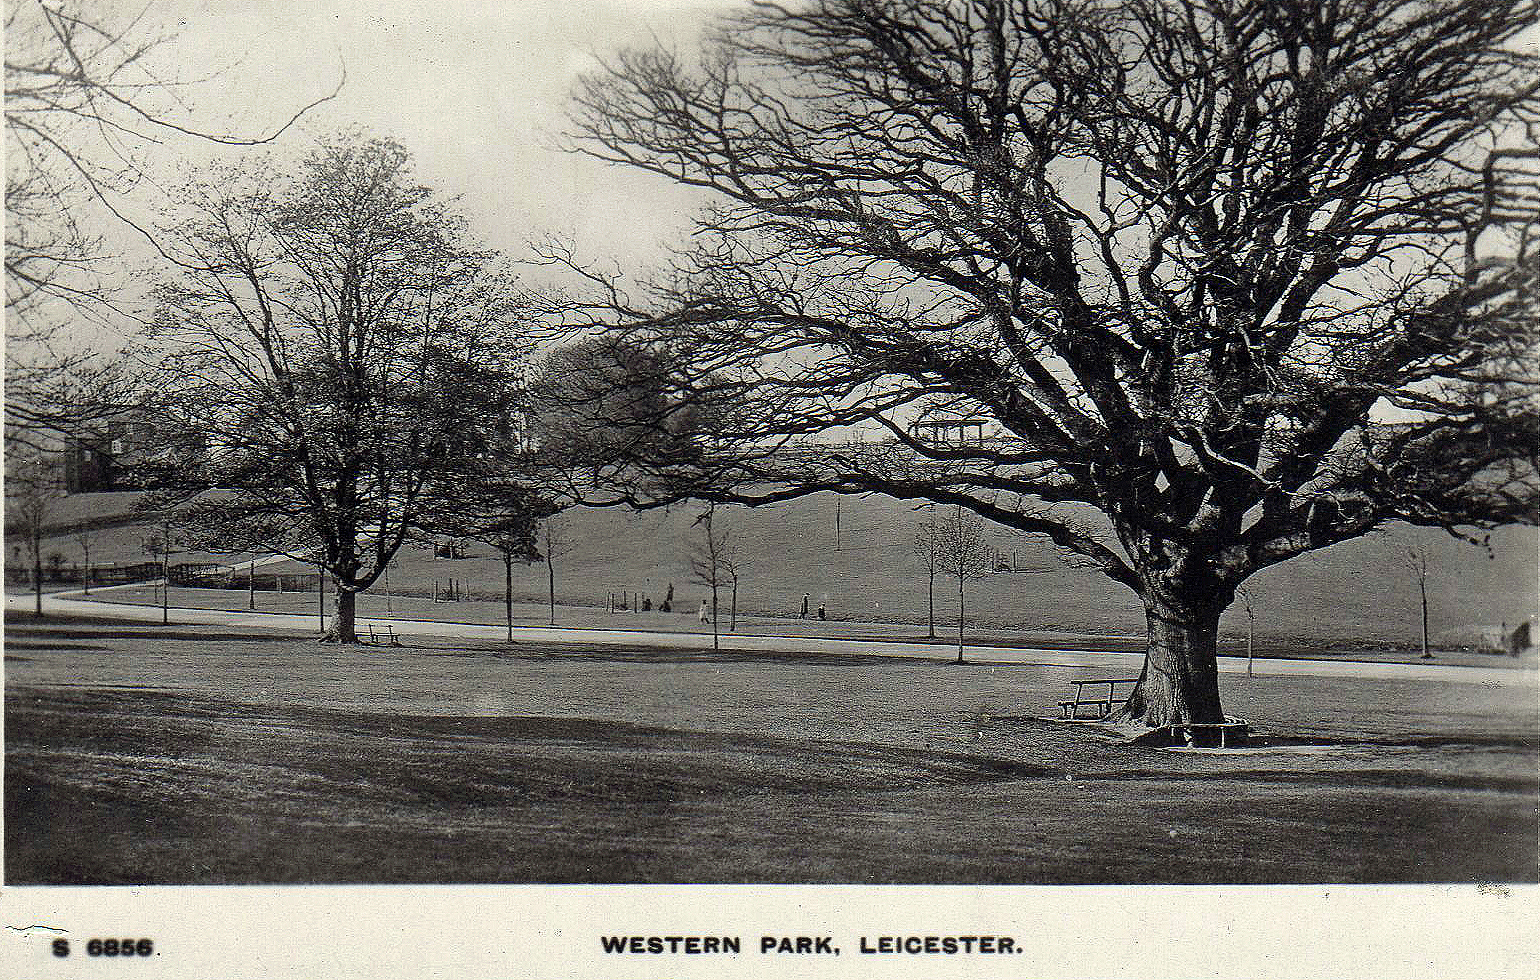 Western Park, Leicester. 1901-1920: Board view across the park (File:1526)